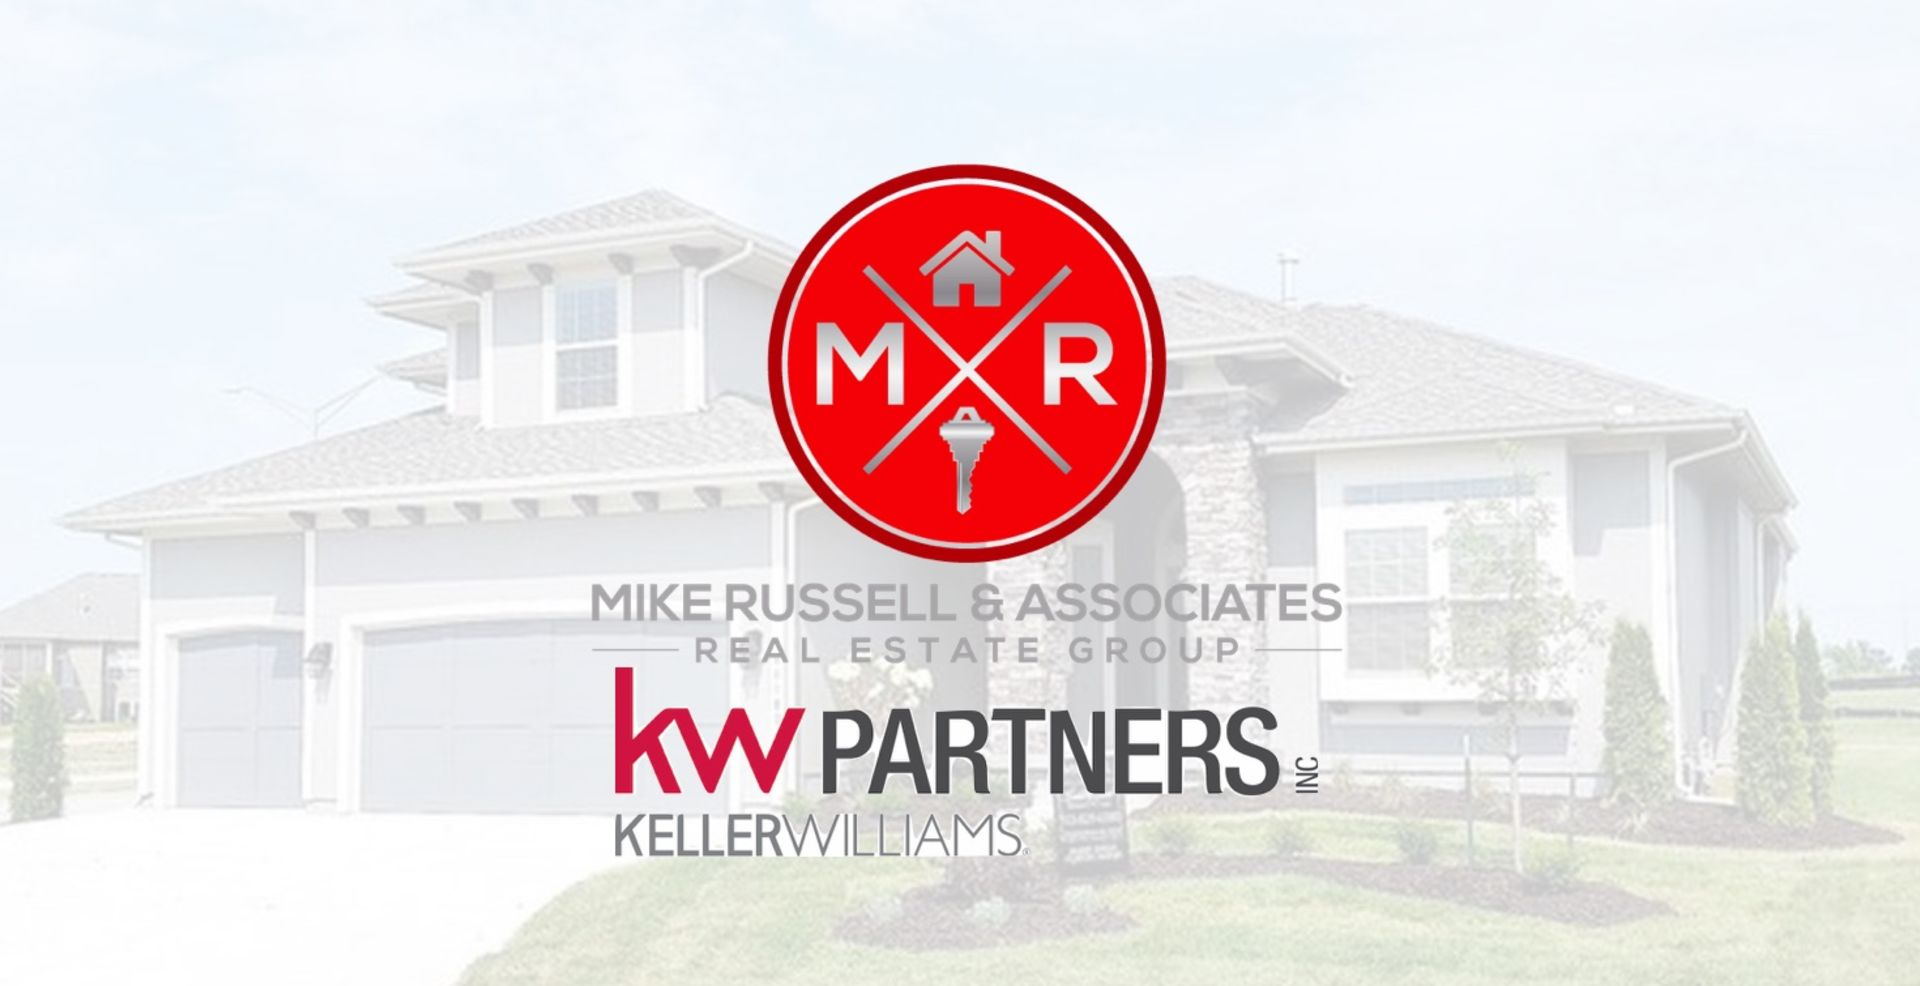 Introducing the new Mike Russell Associates Real Estate Group, your Johnson County Kansas